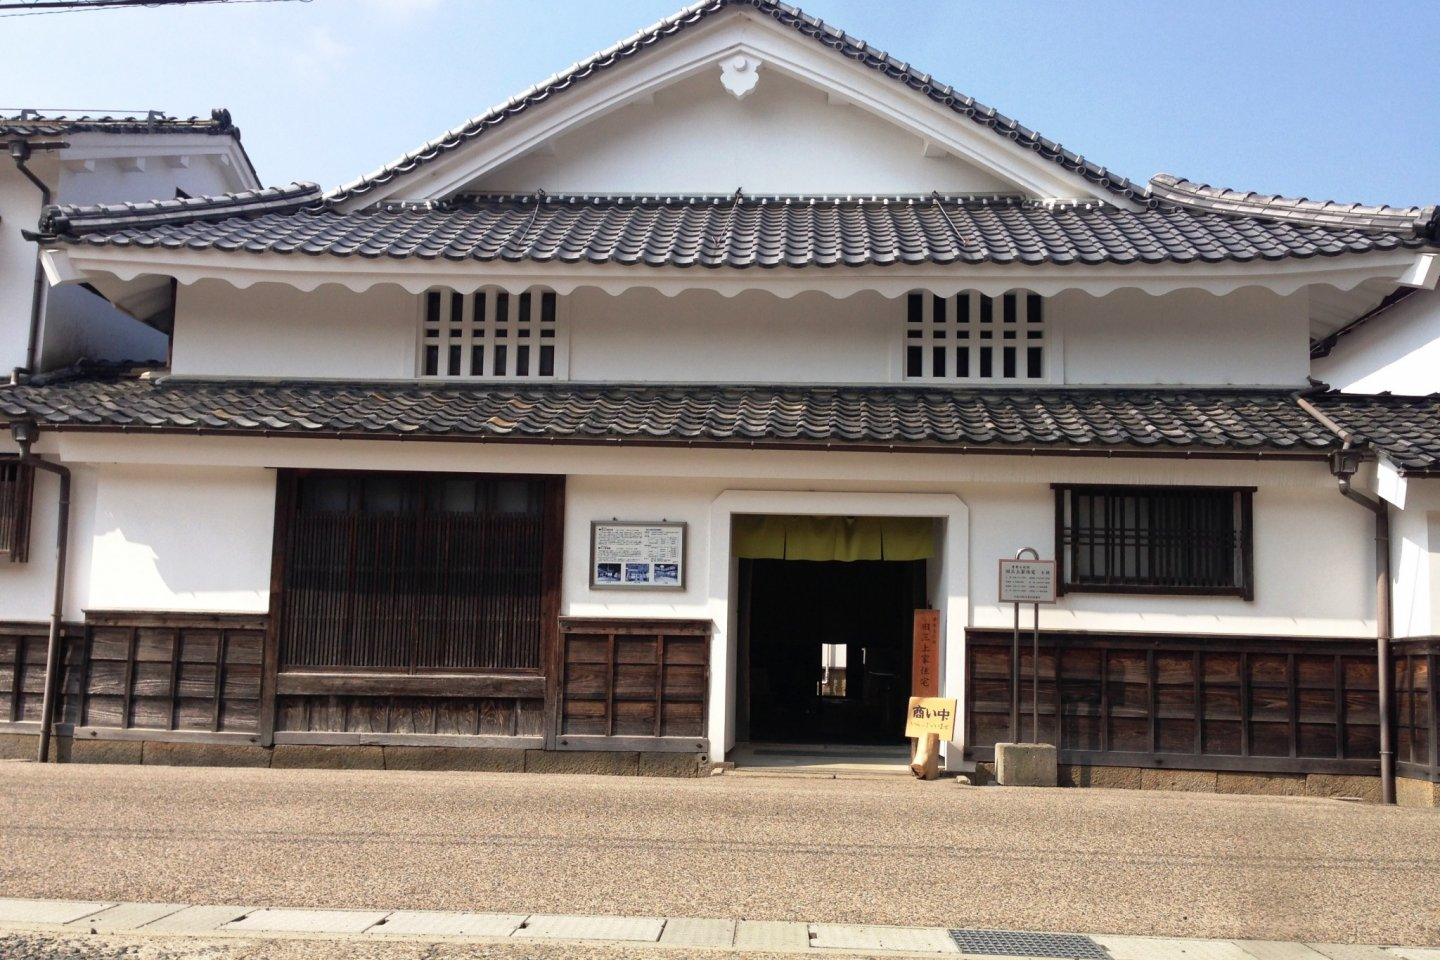 Mikami is a story of transformation and resilience. When steamships rendered his sailing ship business obsolete, he built a sake brewery business, which you can view in painstaking detail.